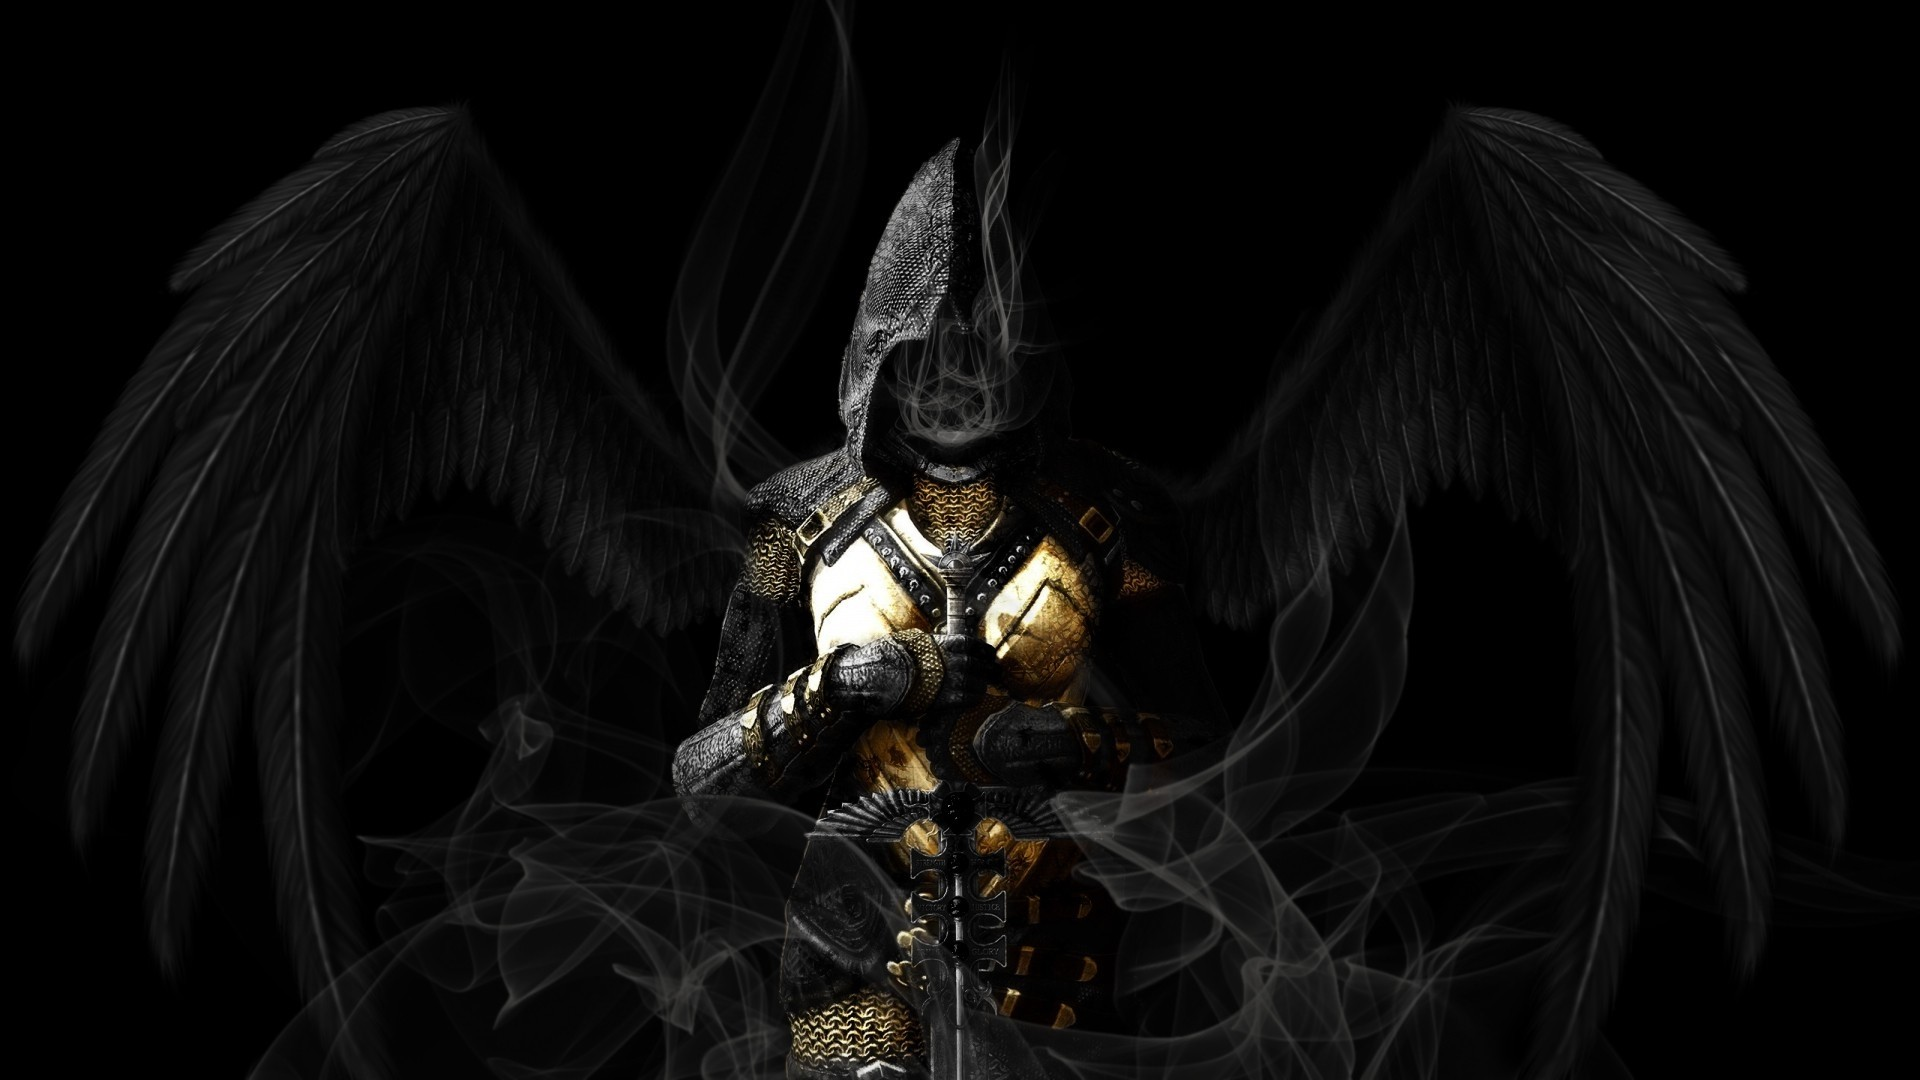 Res: 1920x1080, grim reaper wallpaper  - Angel Wings Black Sword gothic dark reaper  grim angels